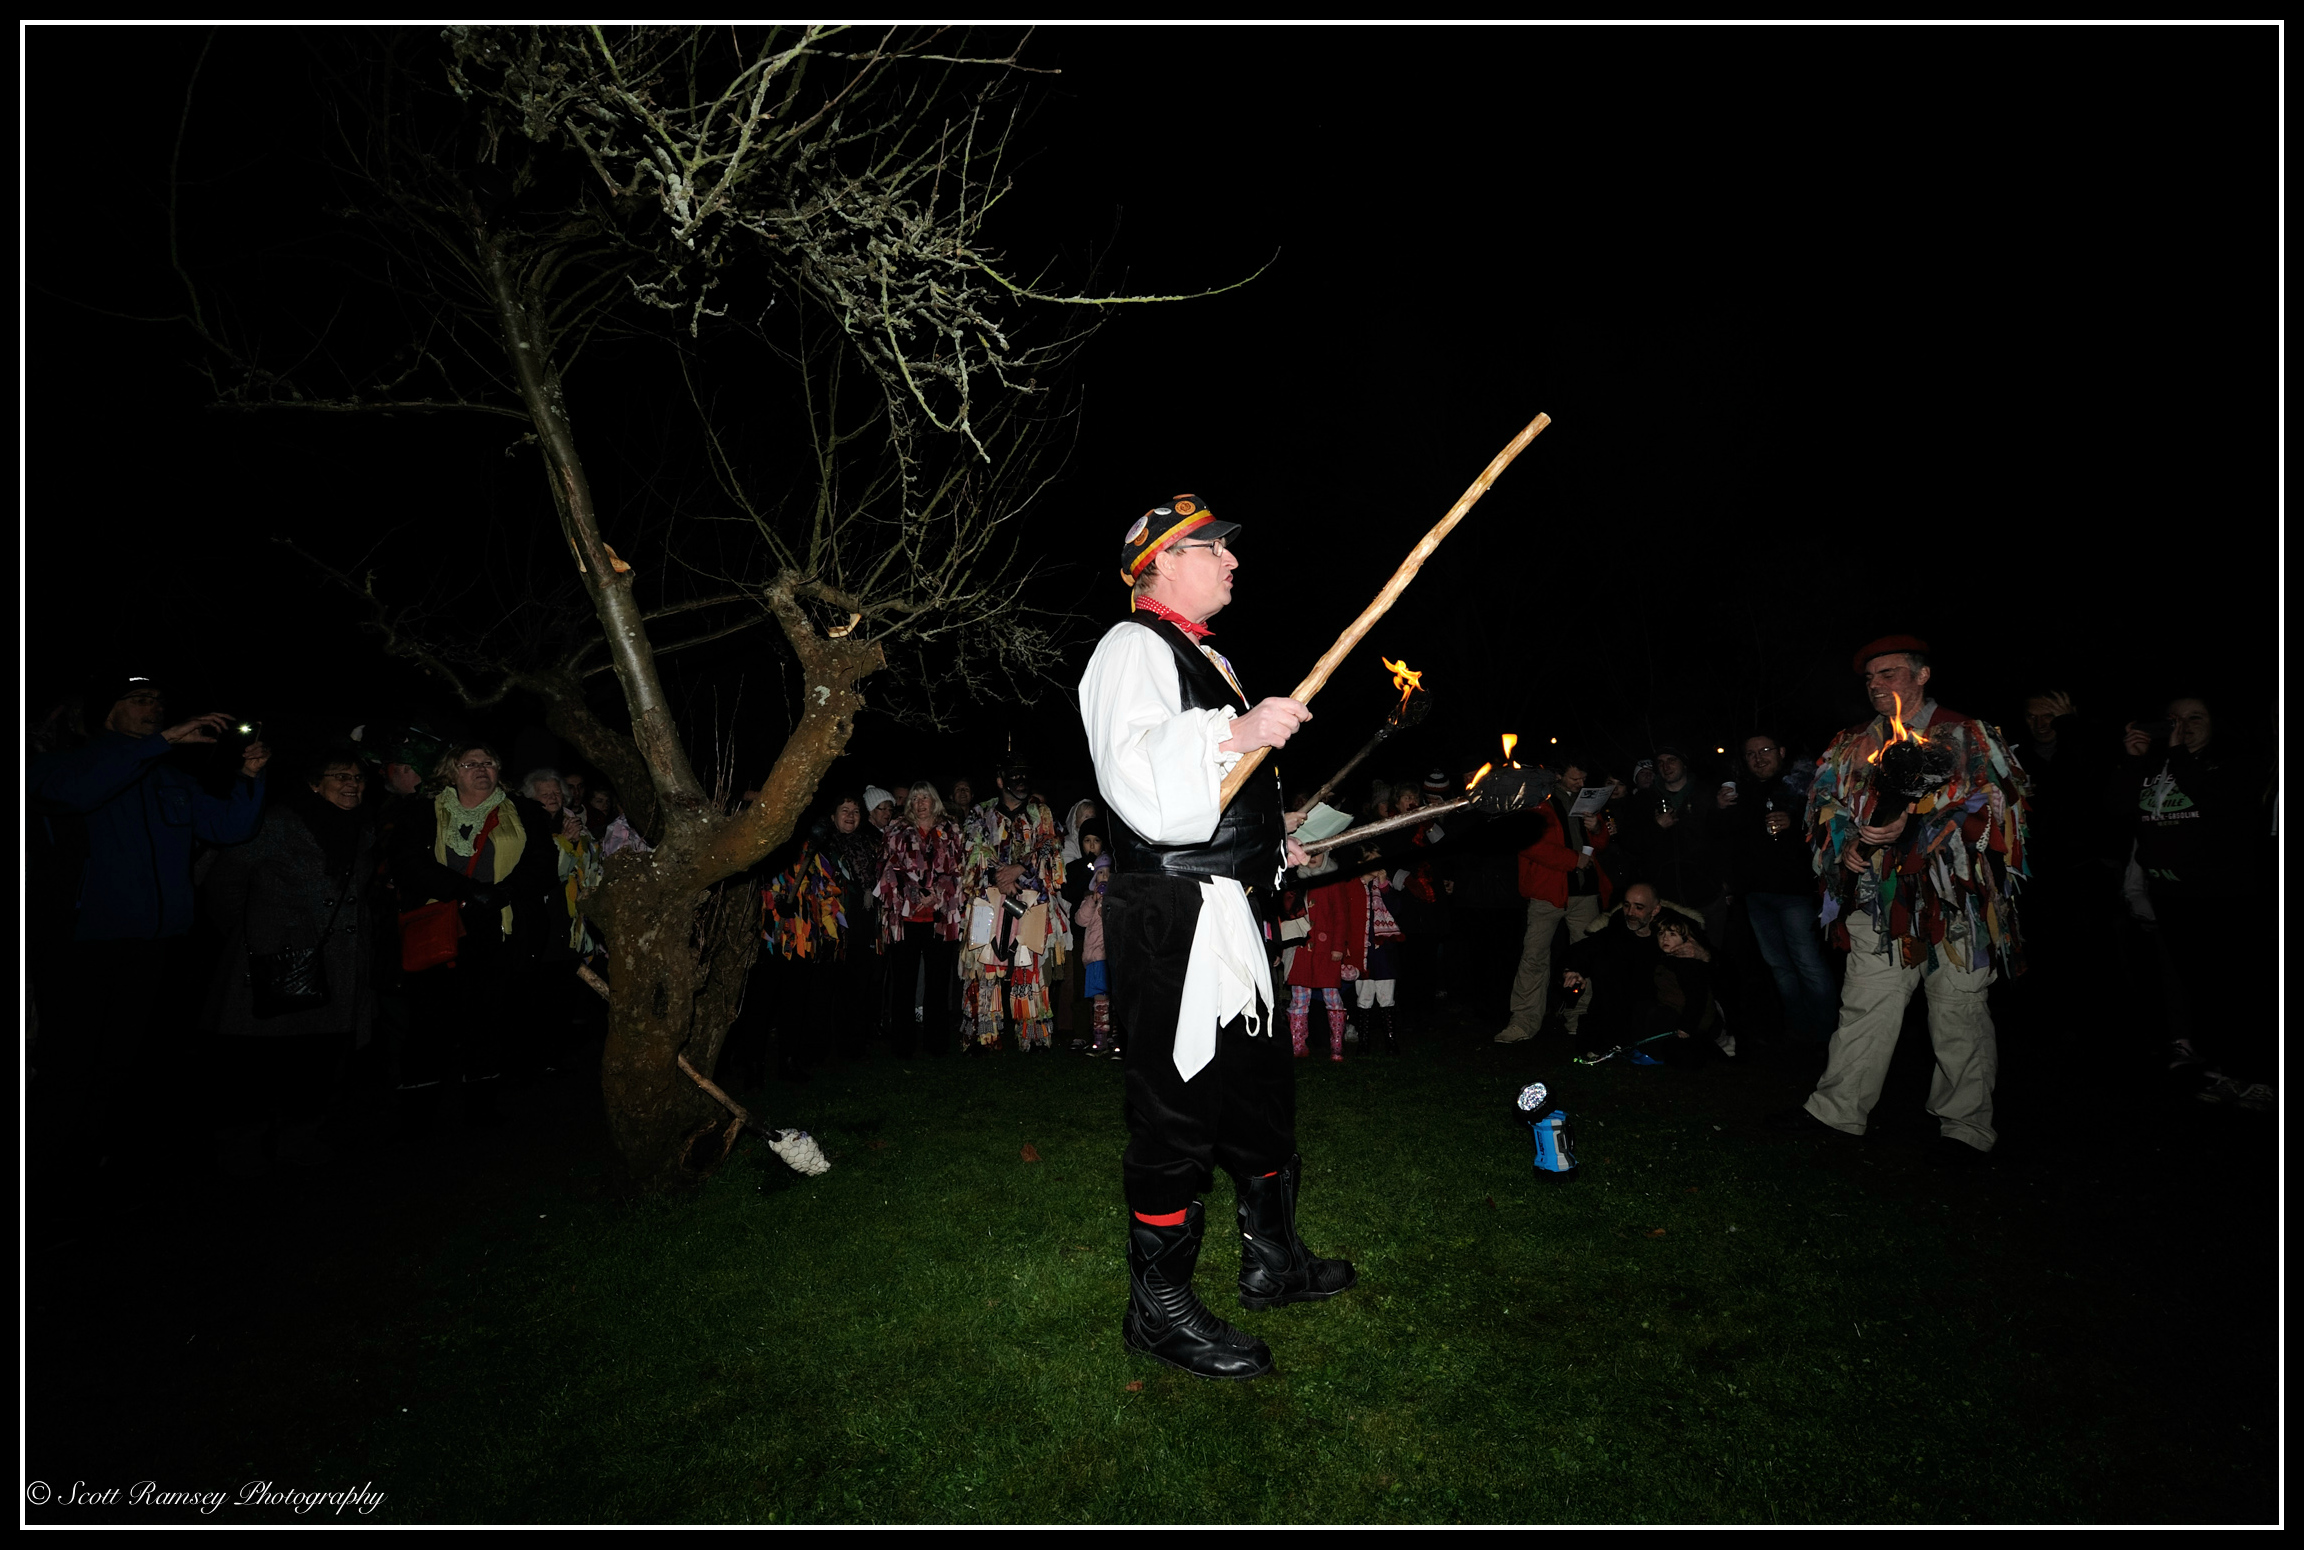 A member of the Sompting Village Morris leads the chanting during the Wassail in an apple orchard at Tarring village in West Sussex.